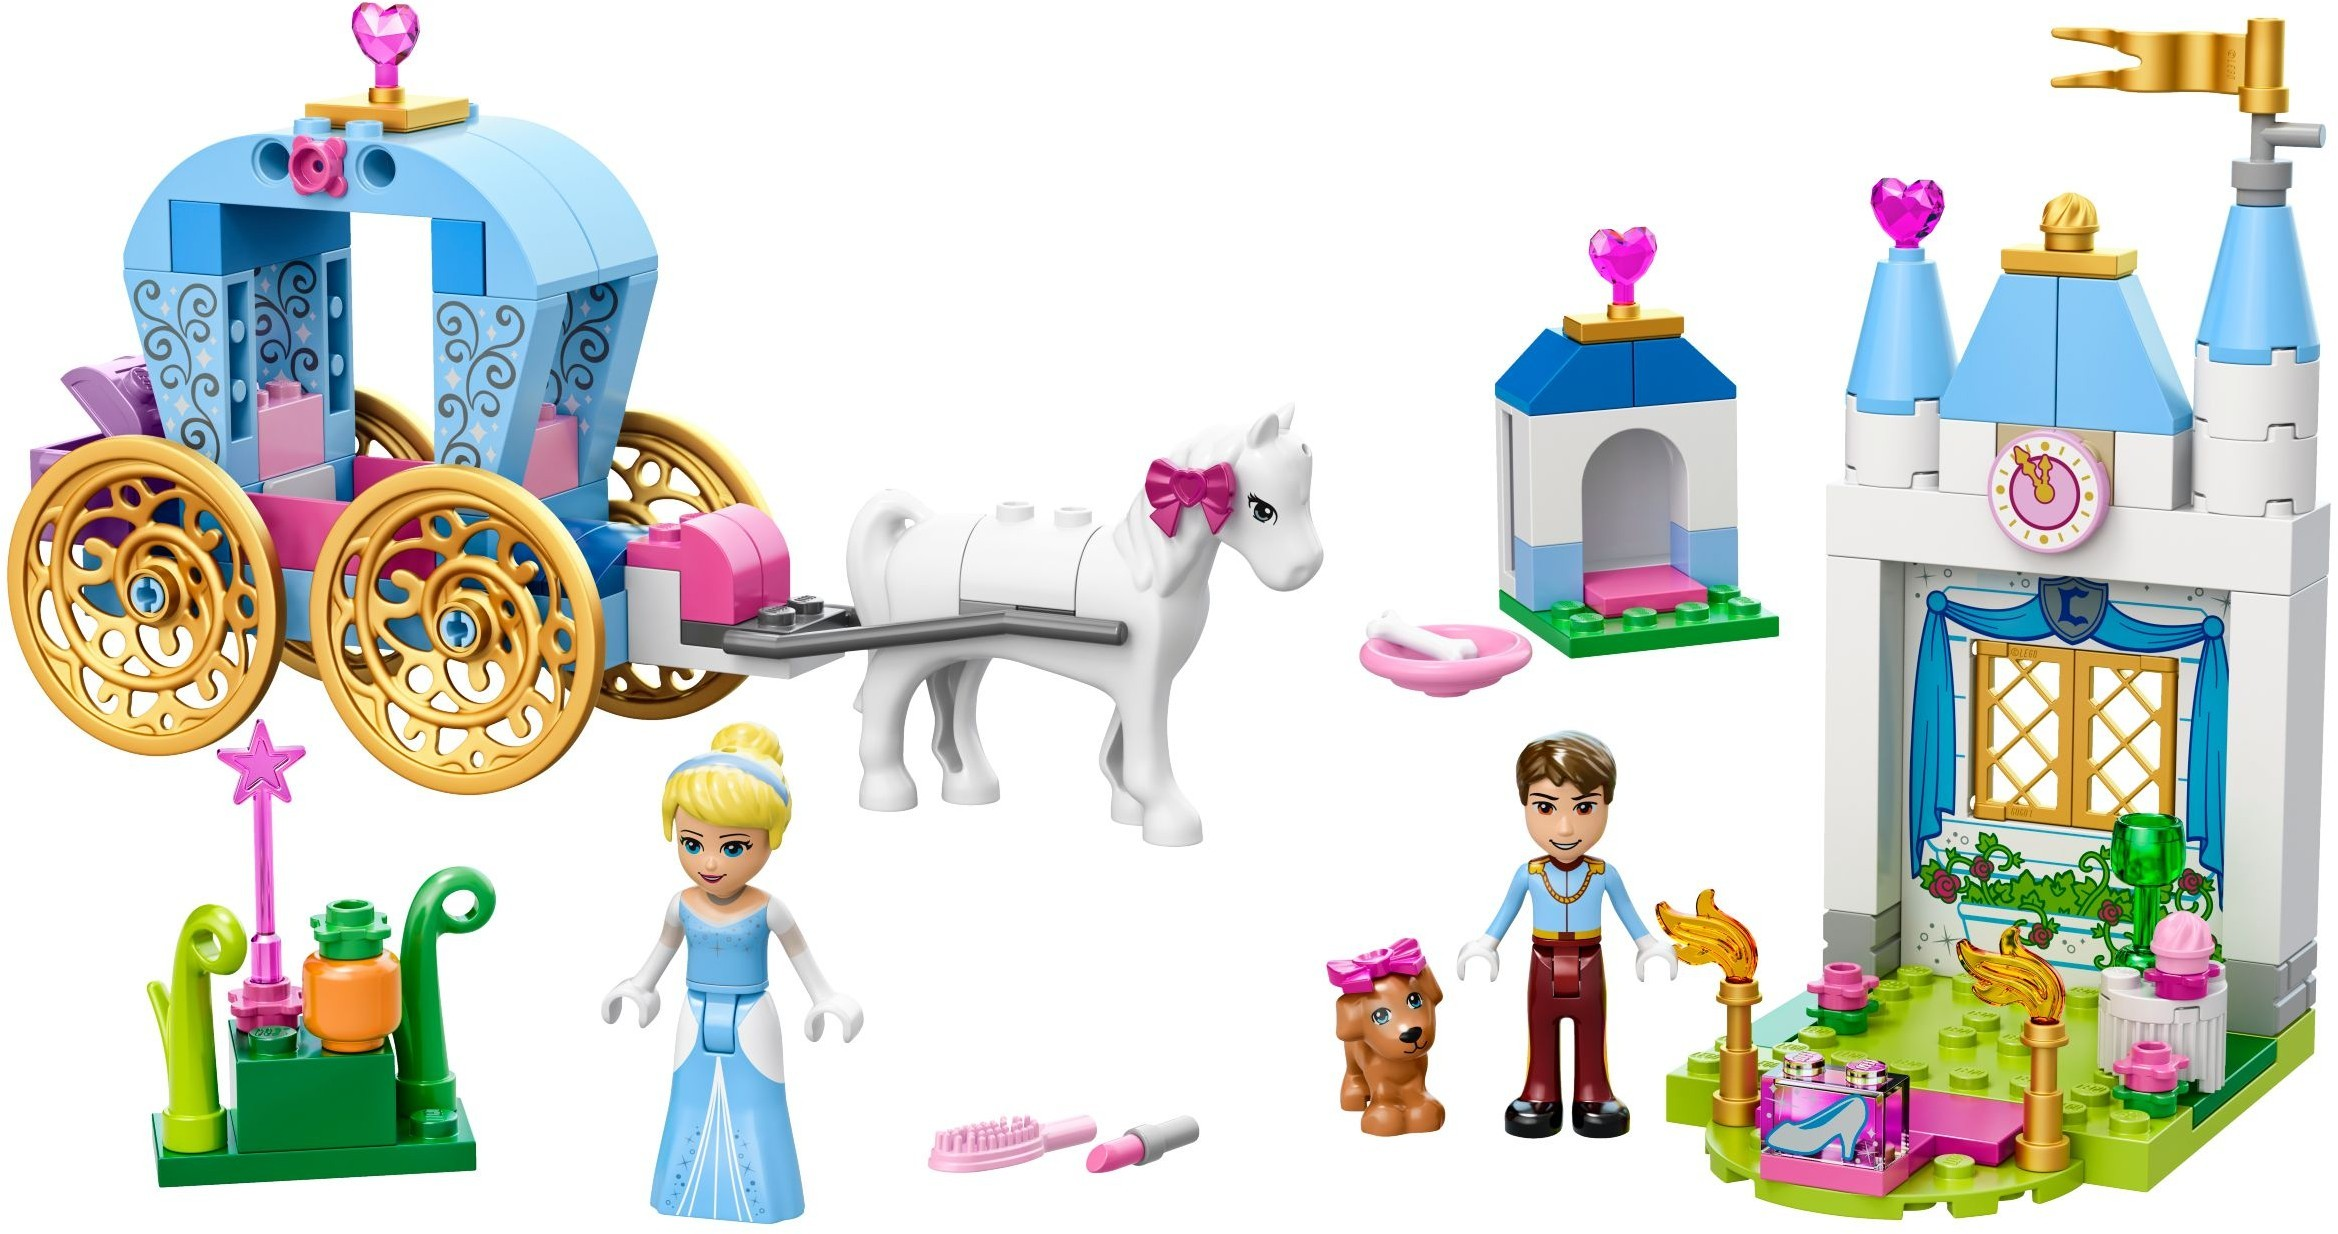 Tagged brickset lego set. Carriage clipart prince charming